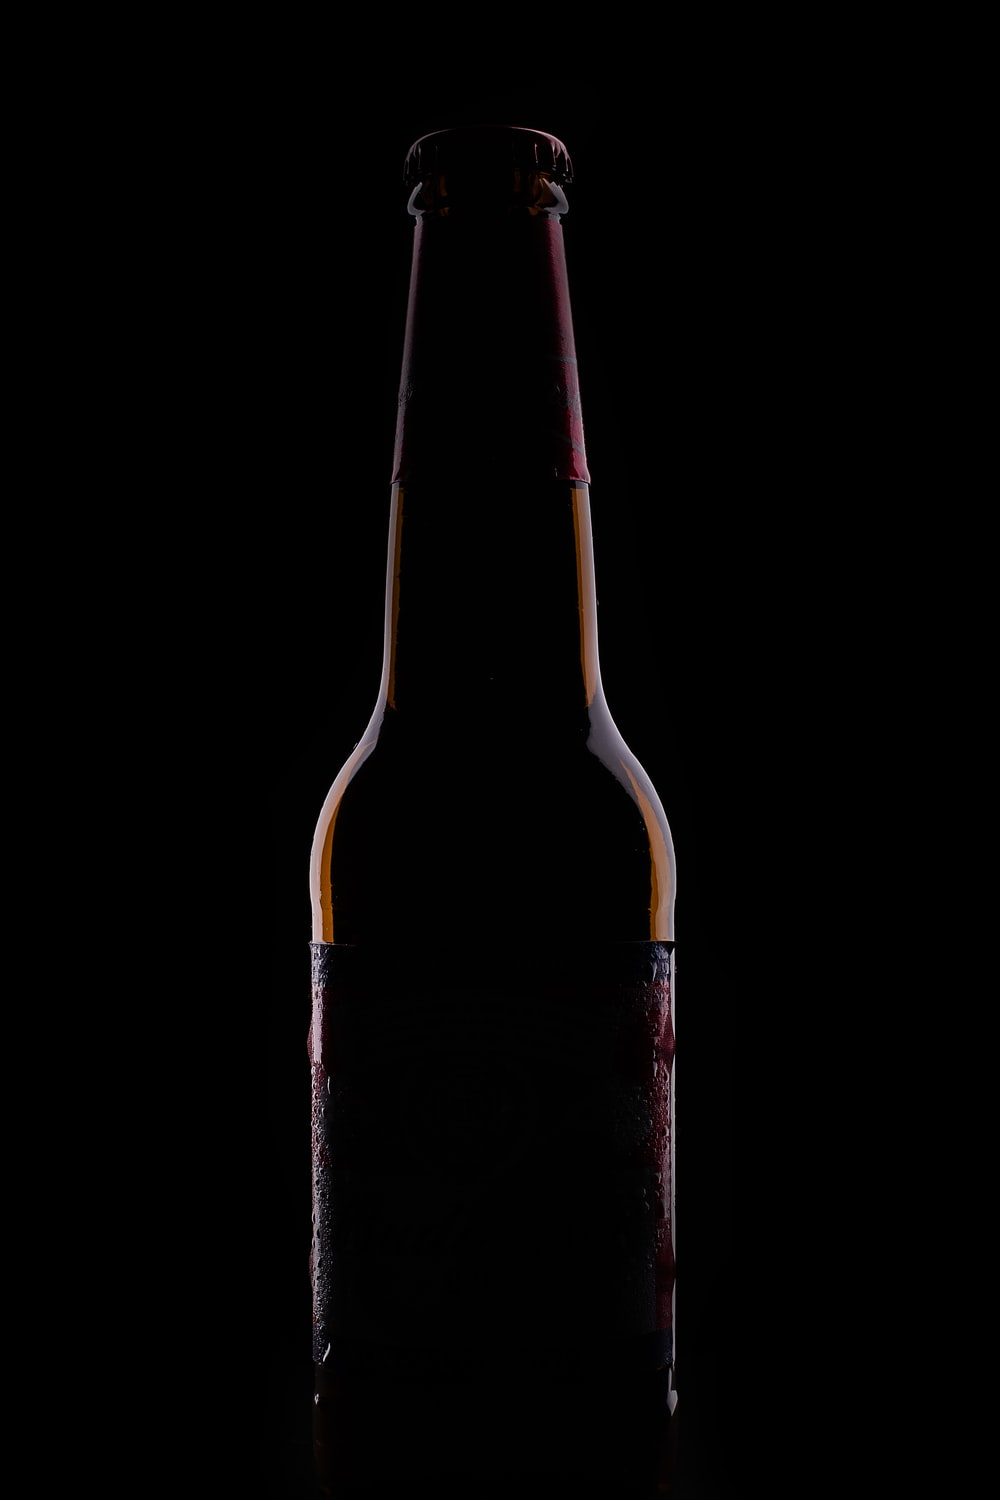 black glass bottle with white background